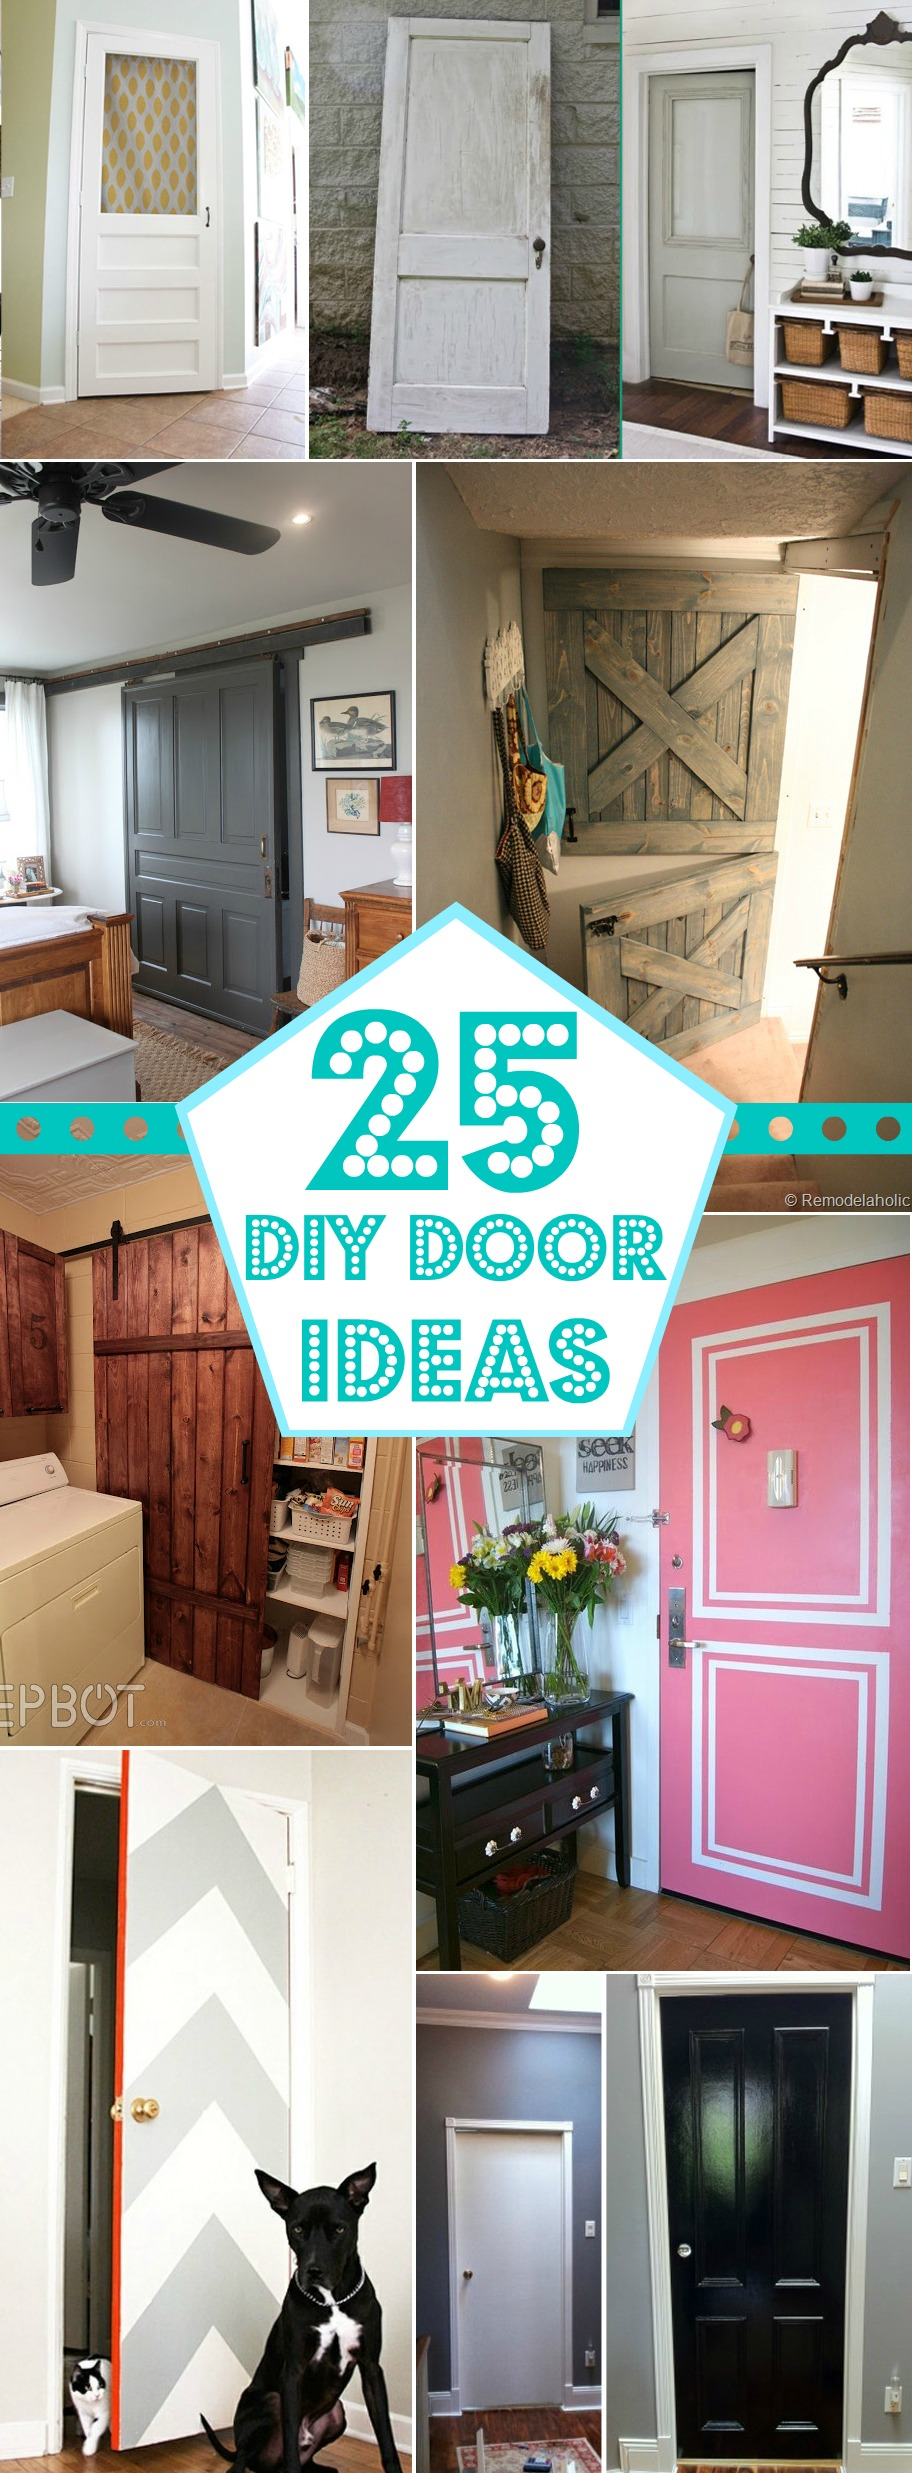 25 DIY Door Ideas @Remodelaholic #christmas